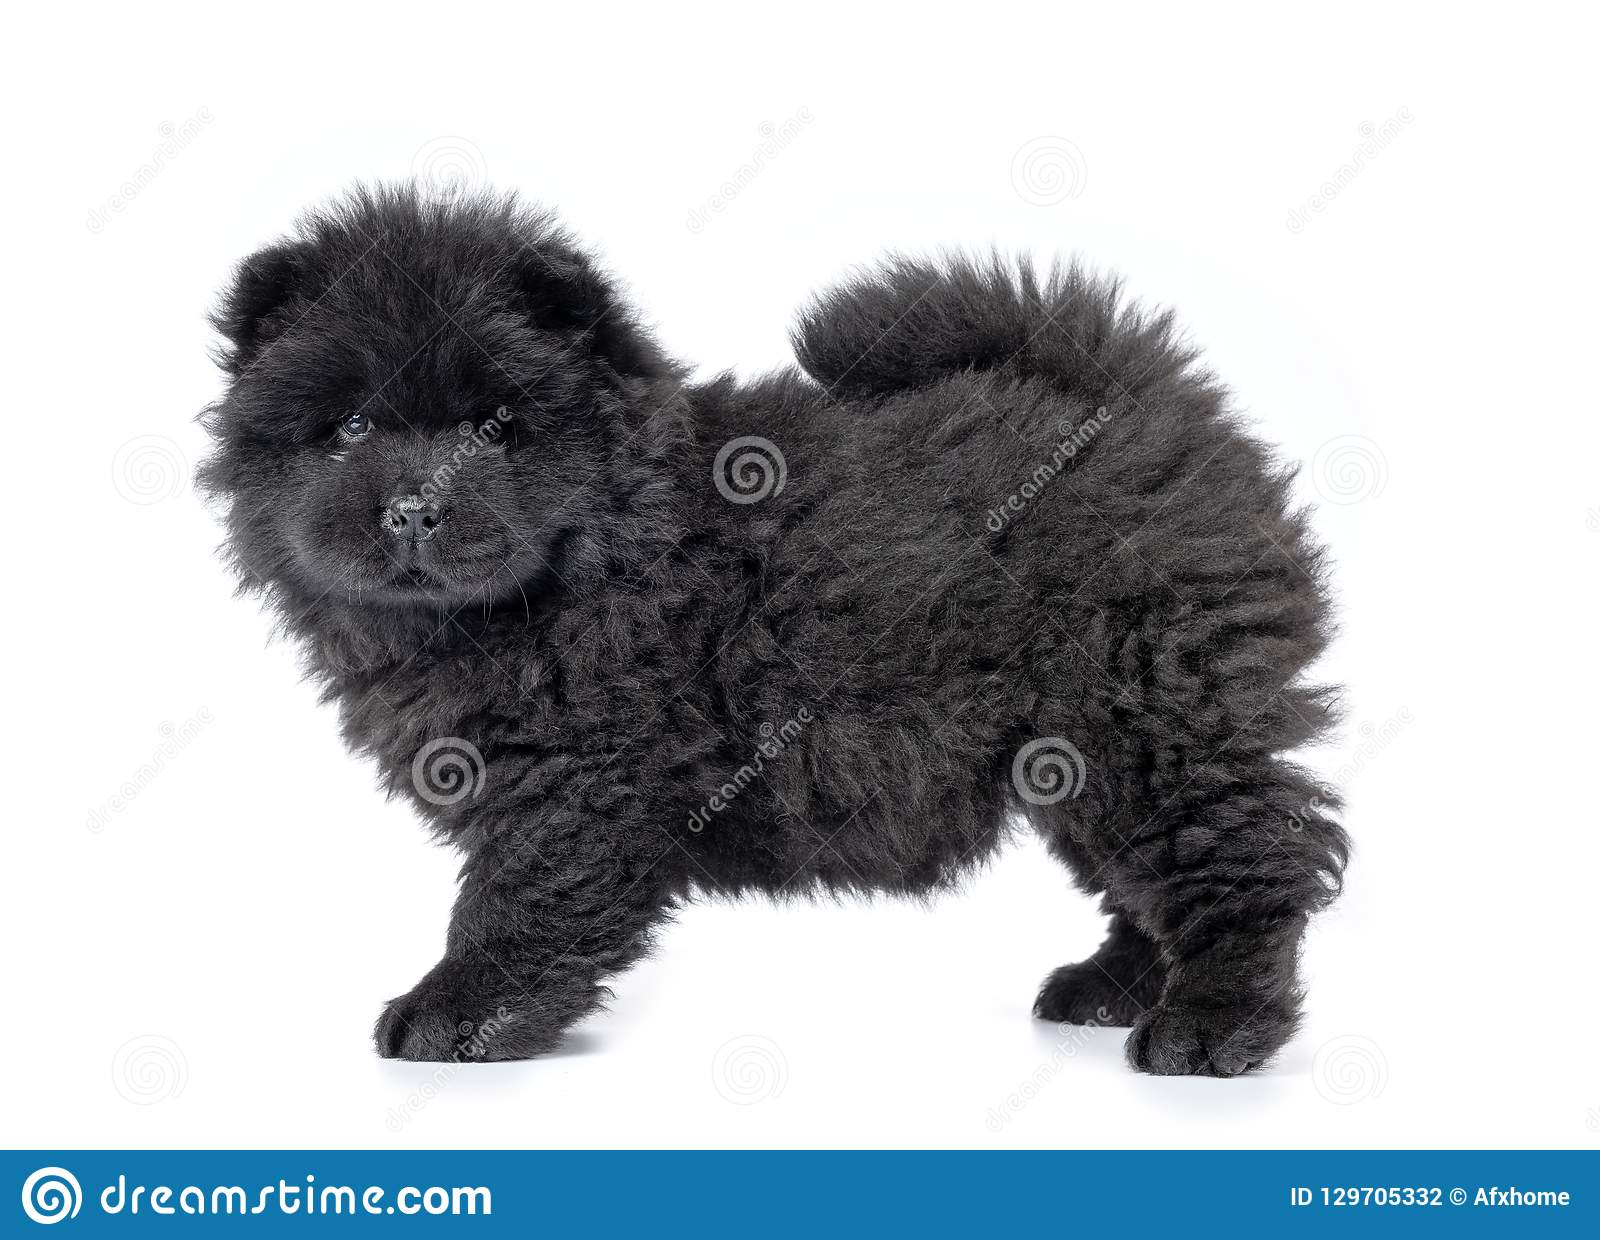 Fluffy Black Chow Chow Puppy Isolated On White Background Stock